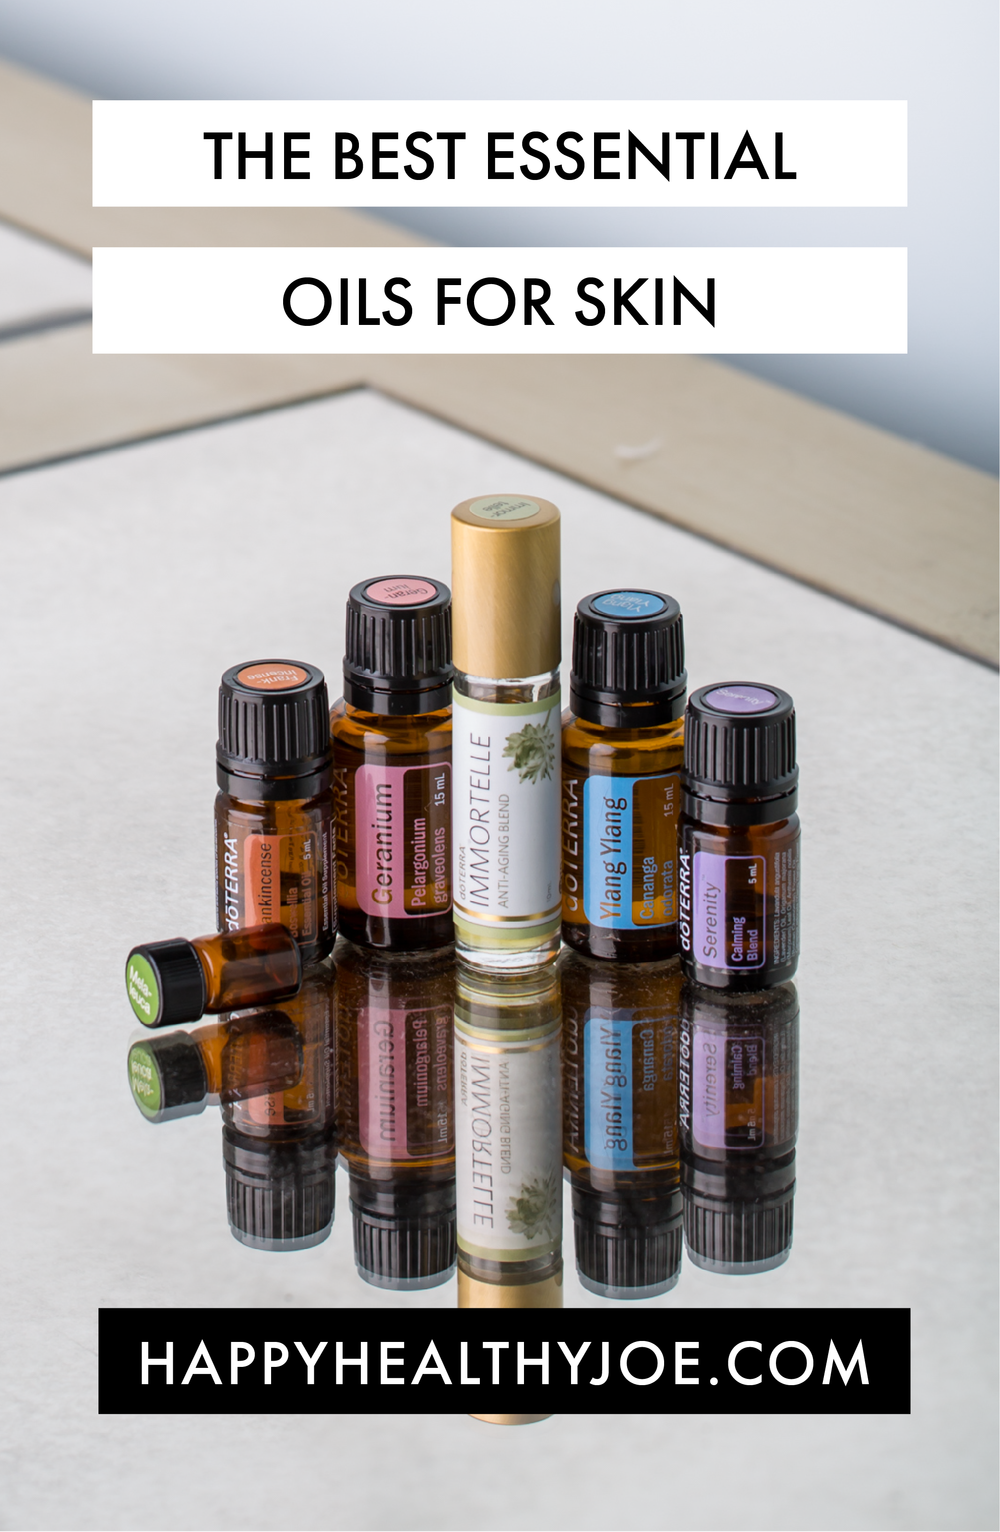 The Best doTERRA Essential Oils For Skin | Happy Healthy Joe